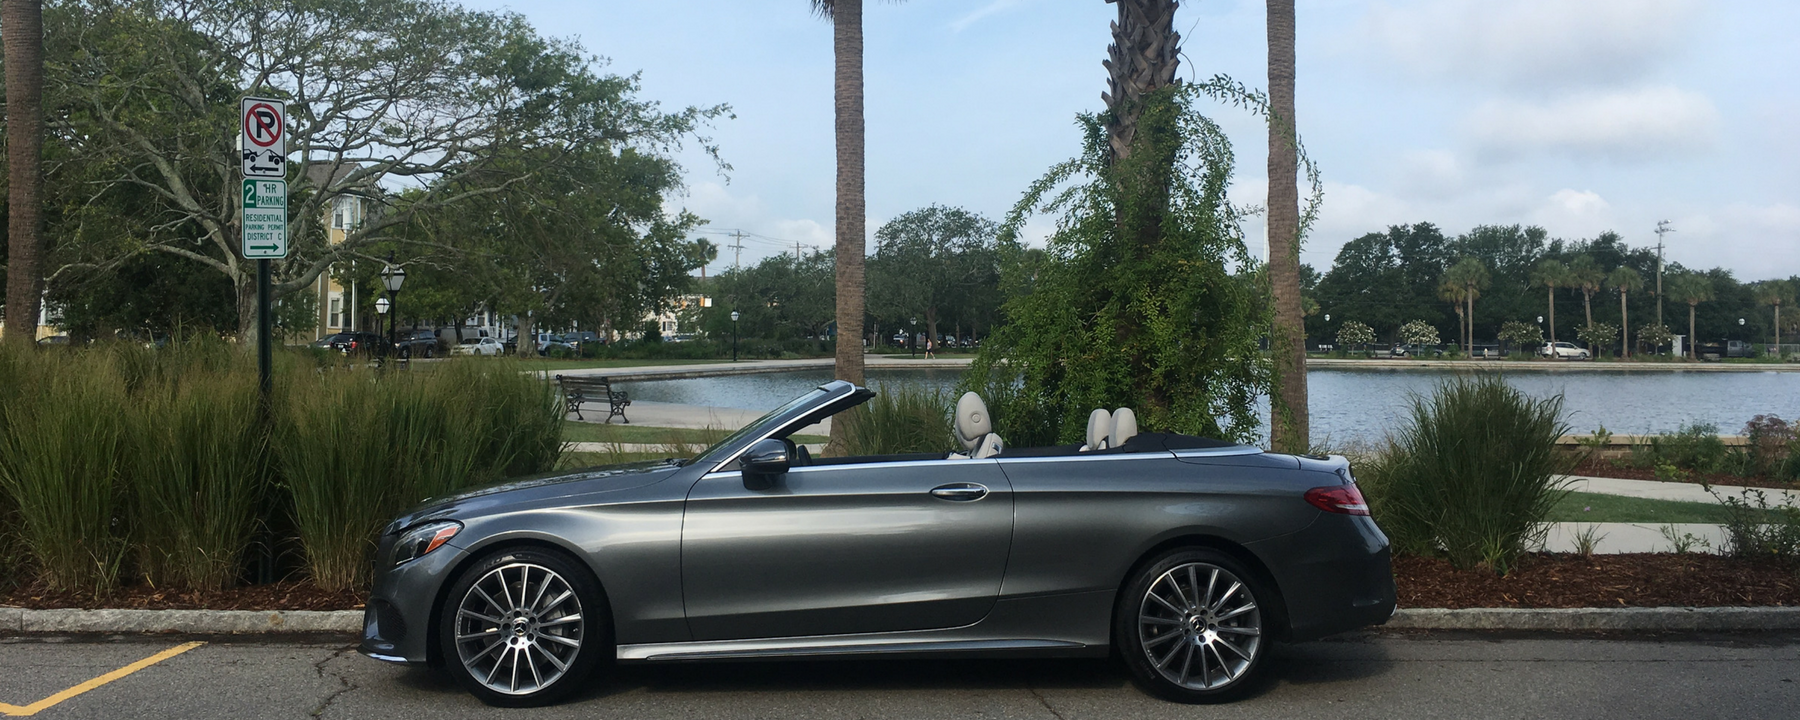 2018_CClass_Mercedes_Benz_Convertible_ColonialLake